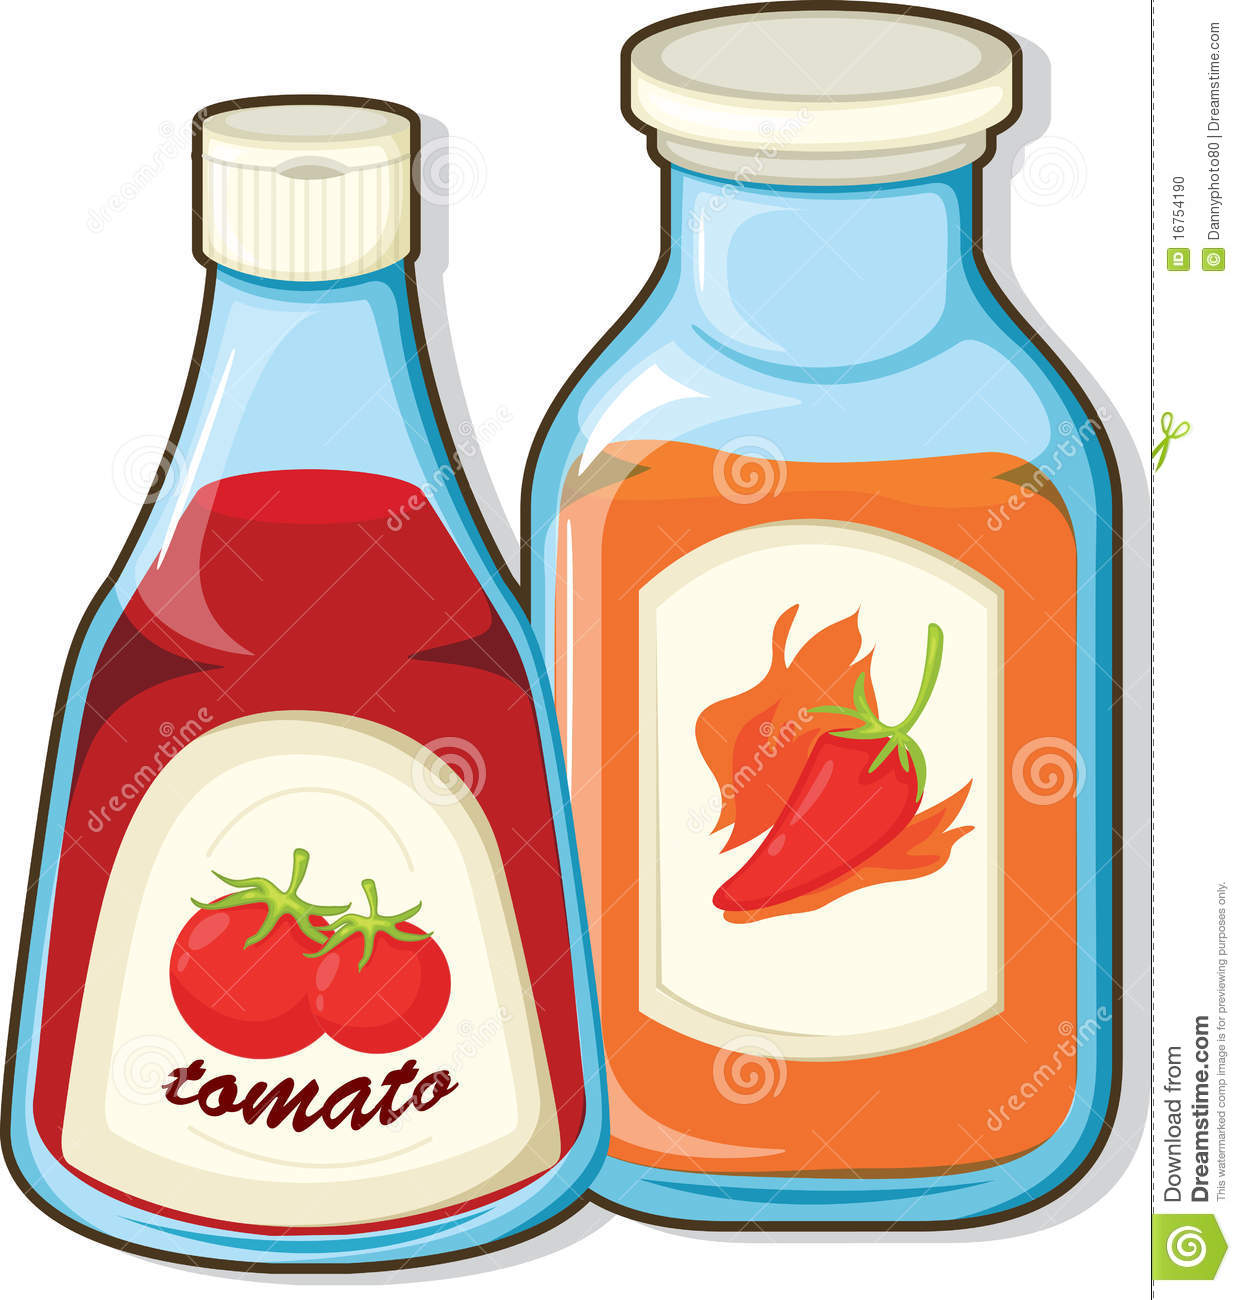 Gallery For > Sauce Bottle Clipart.